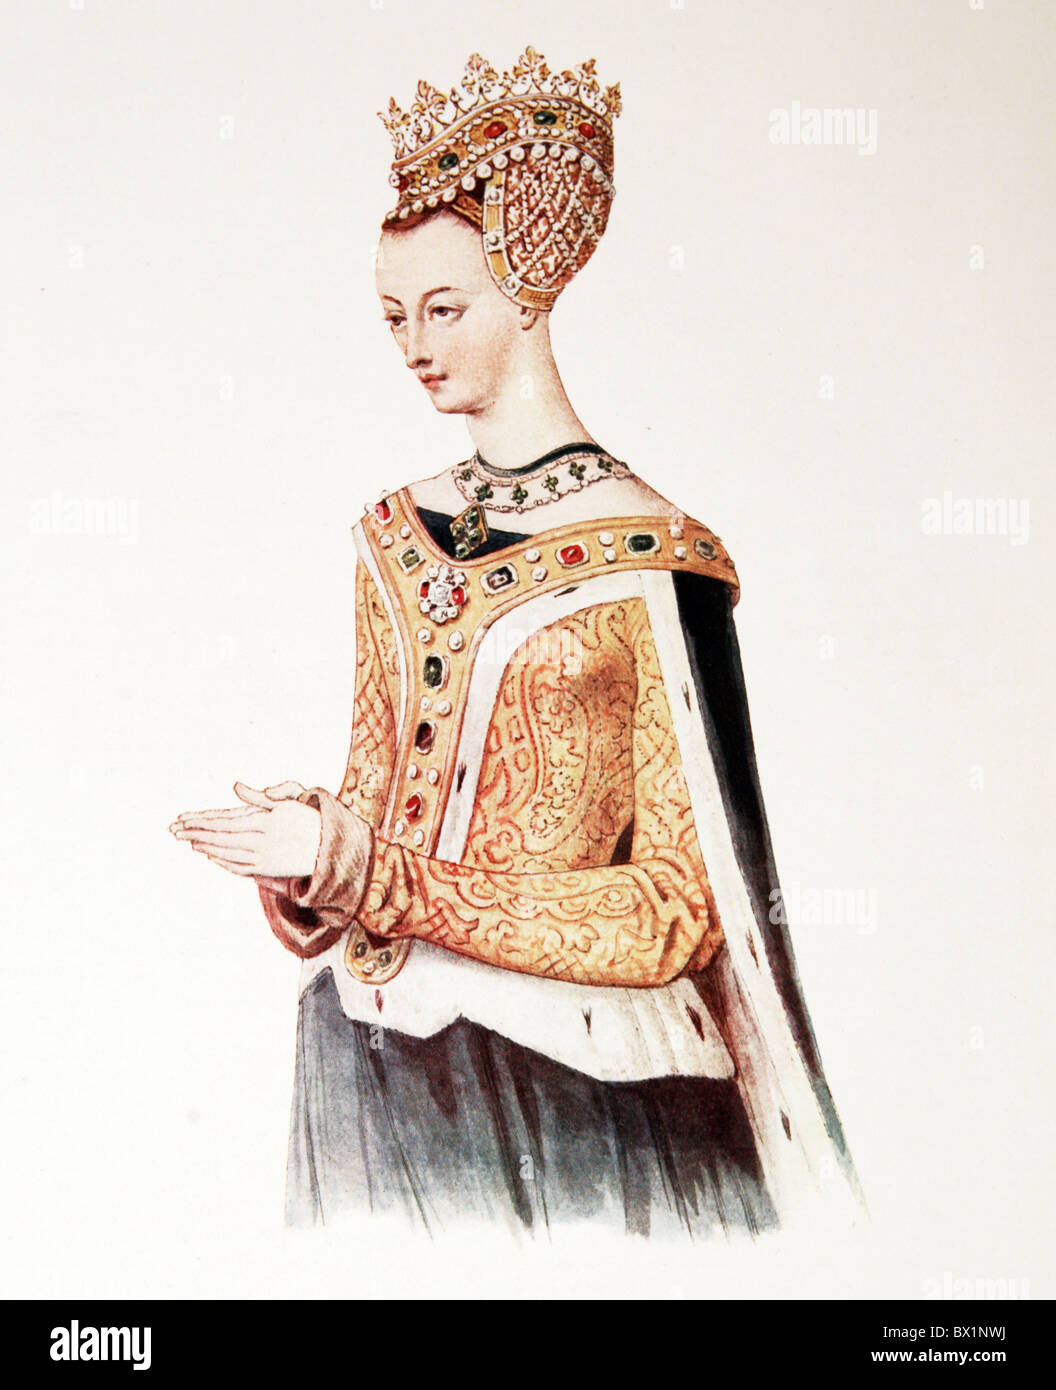 Margaret Queen of Scots, wife of King James IV of Scotland, - Stock Image